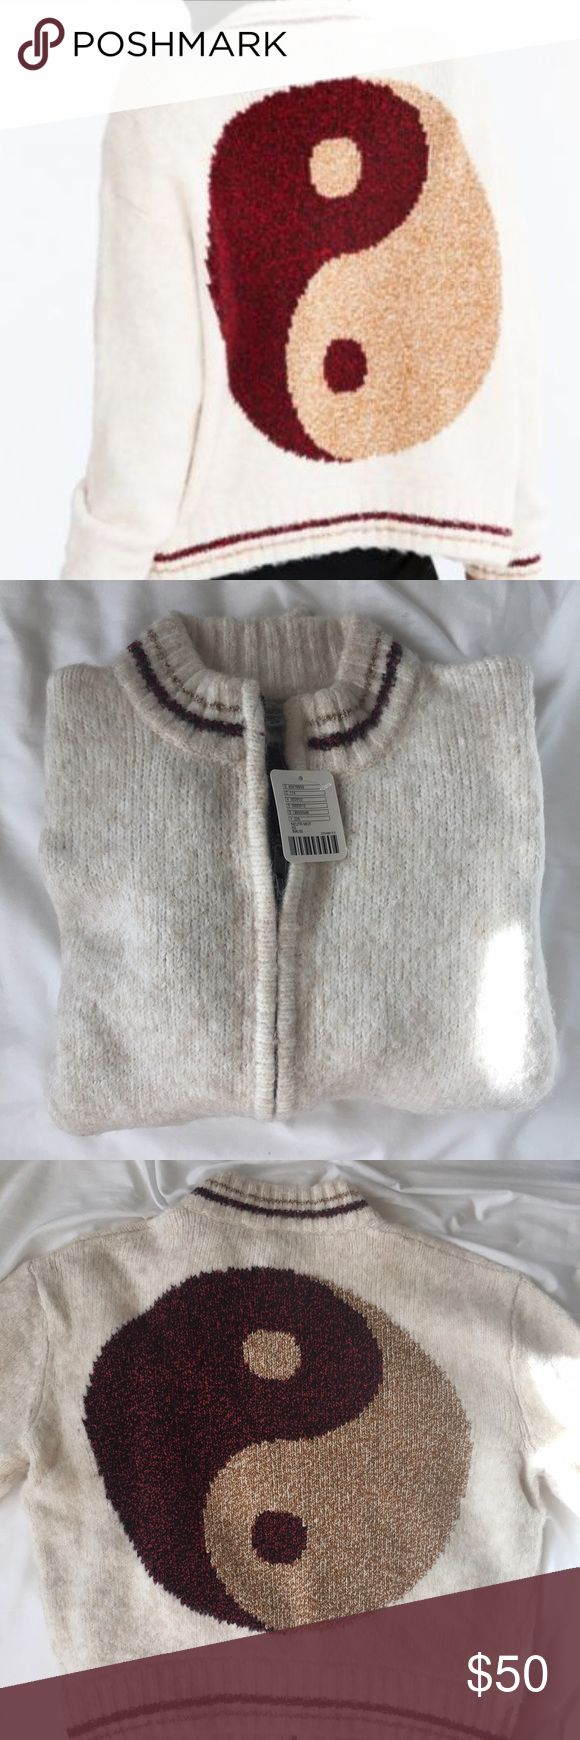 NWT Yin Yang Wool Bomber Zip Up Brand new with tags! Really chic cream zip up bomber. Originally bought for $98. Please use offer button! Brand is ecote. Topshop used for exposure Topshop Jackets & Coats